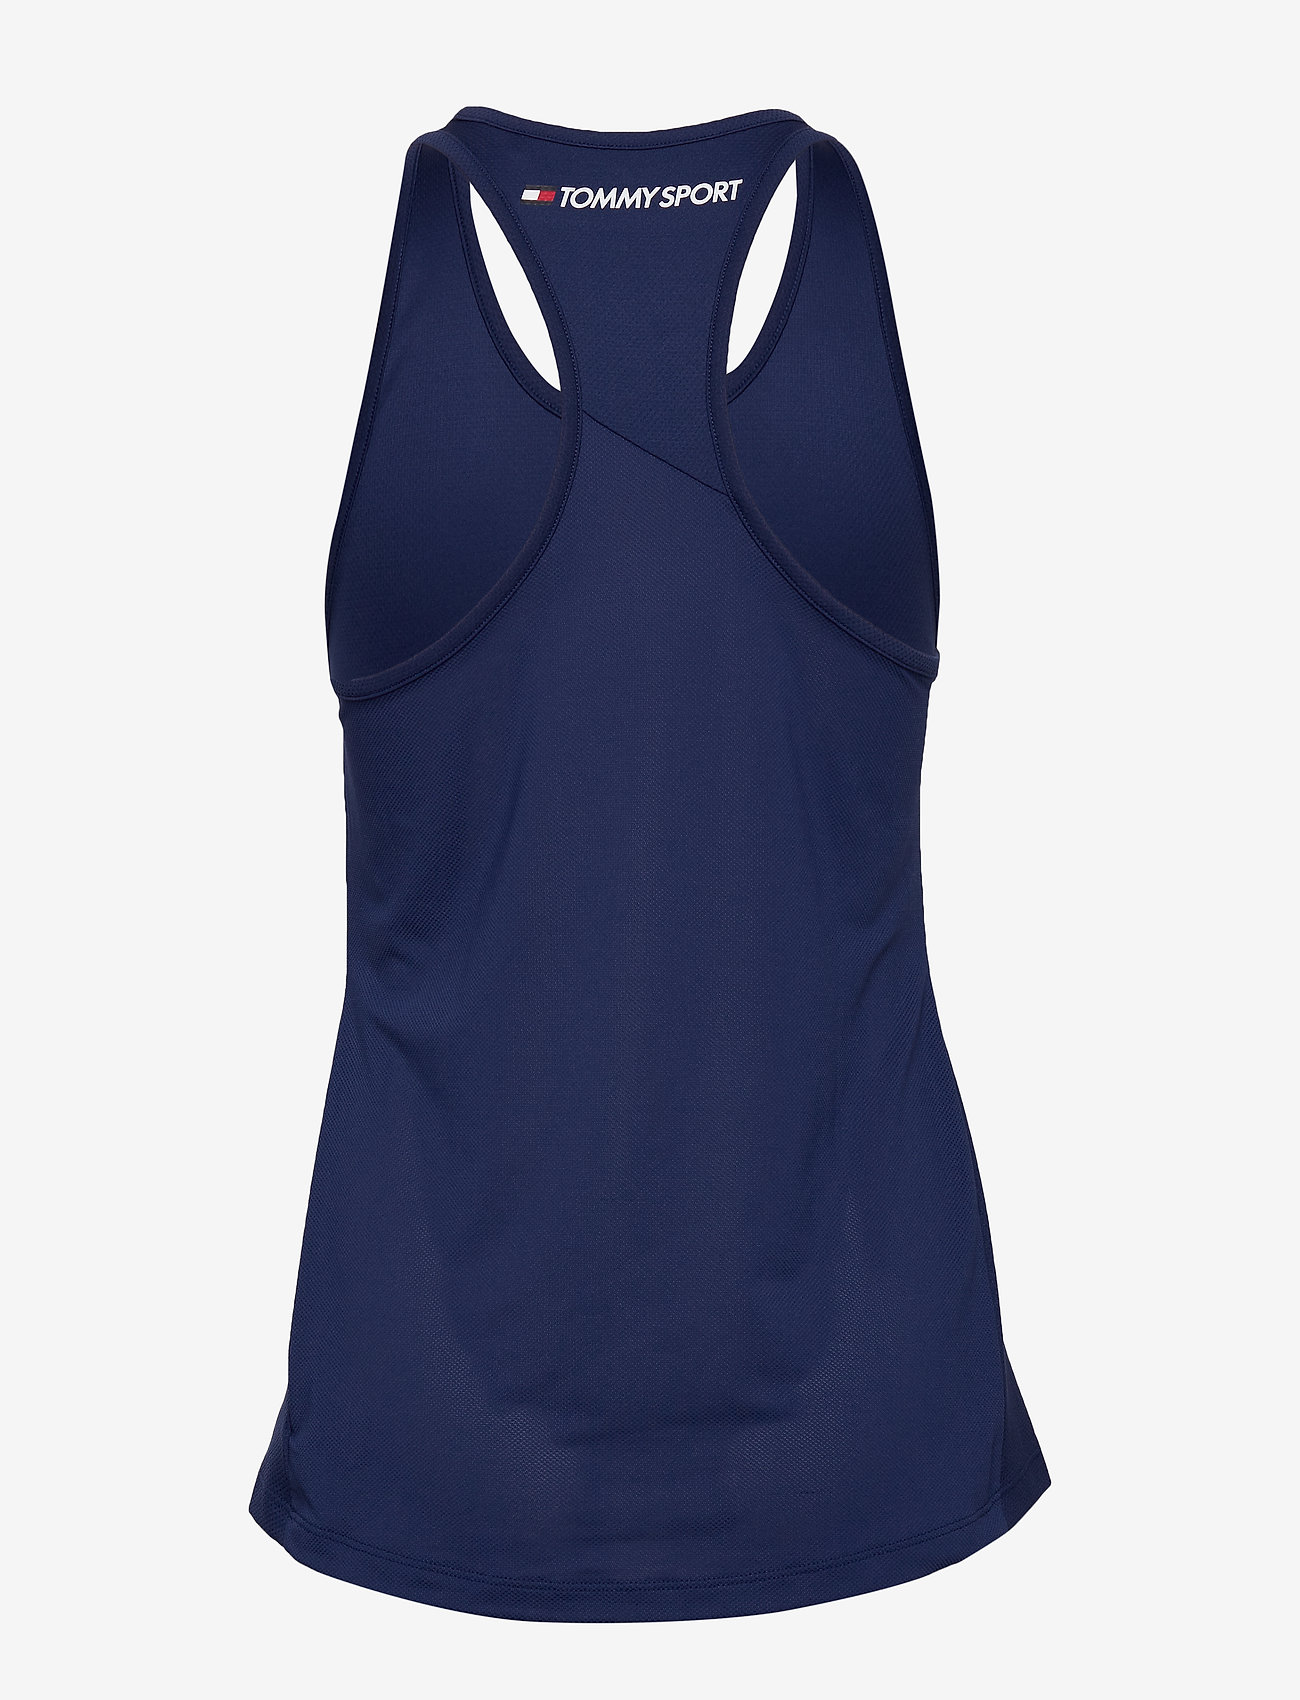 Tommy Sport - PERFORMANCE TANK TOP - tank tops - blue ink - 1